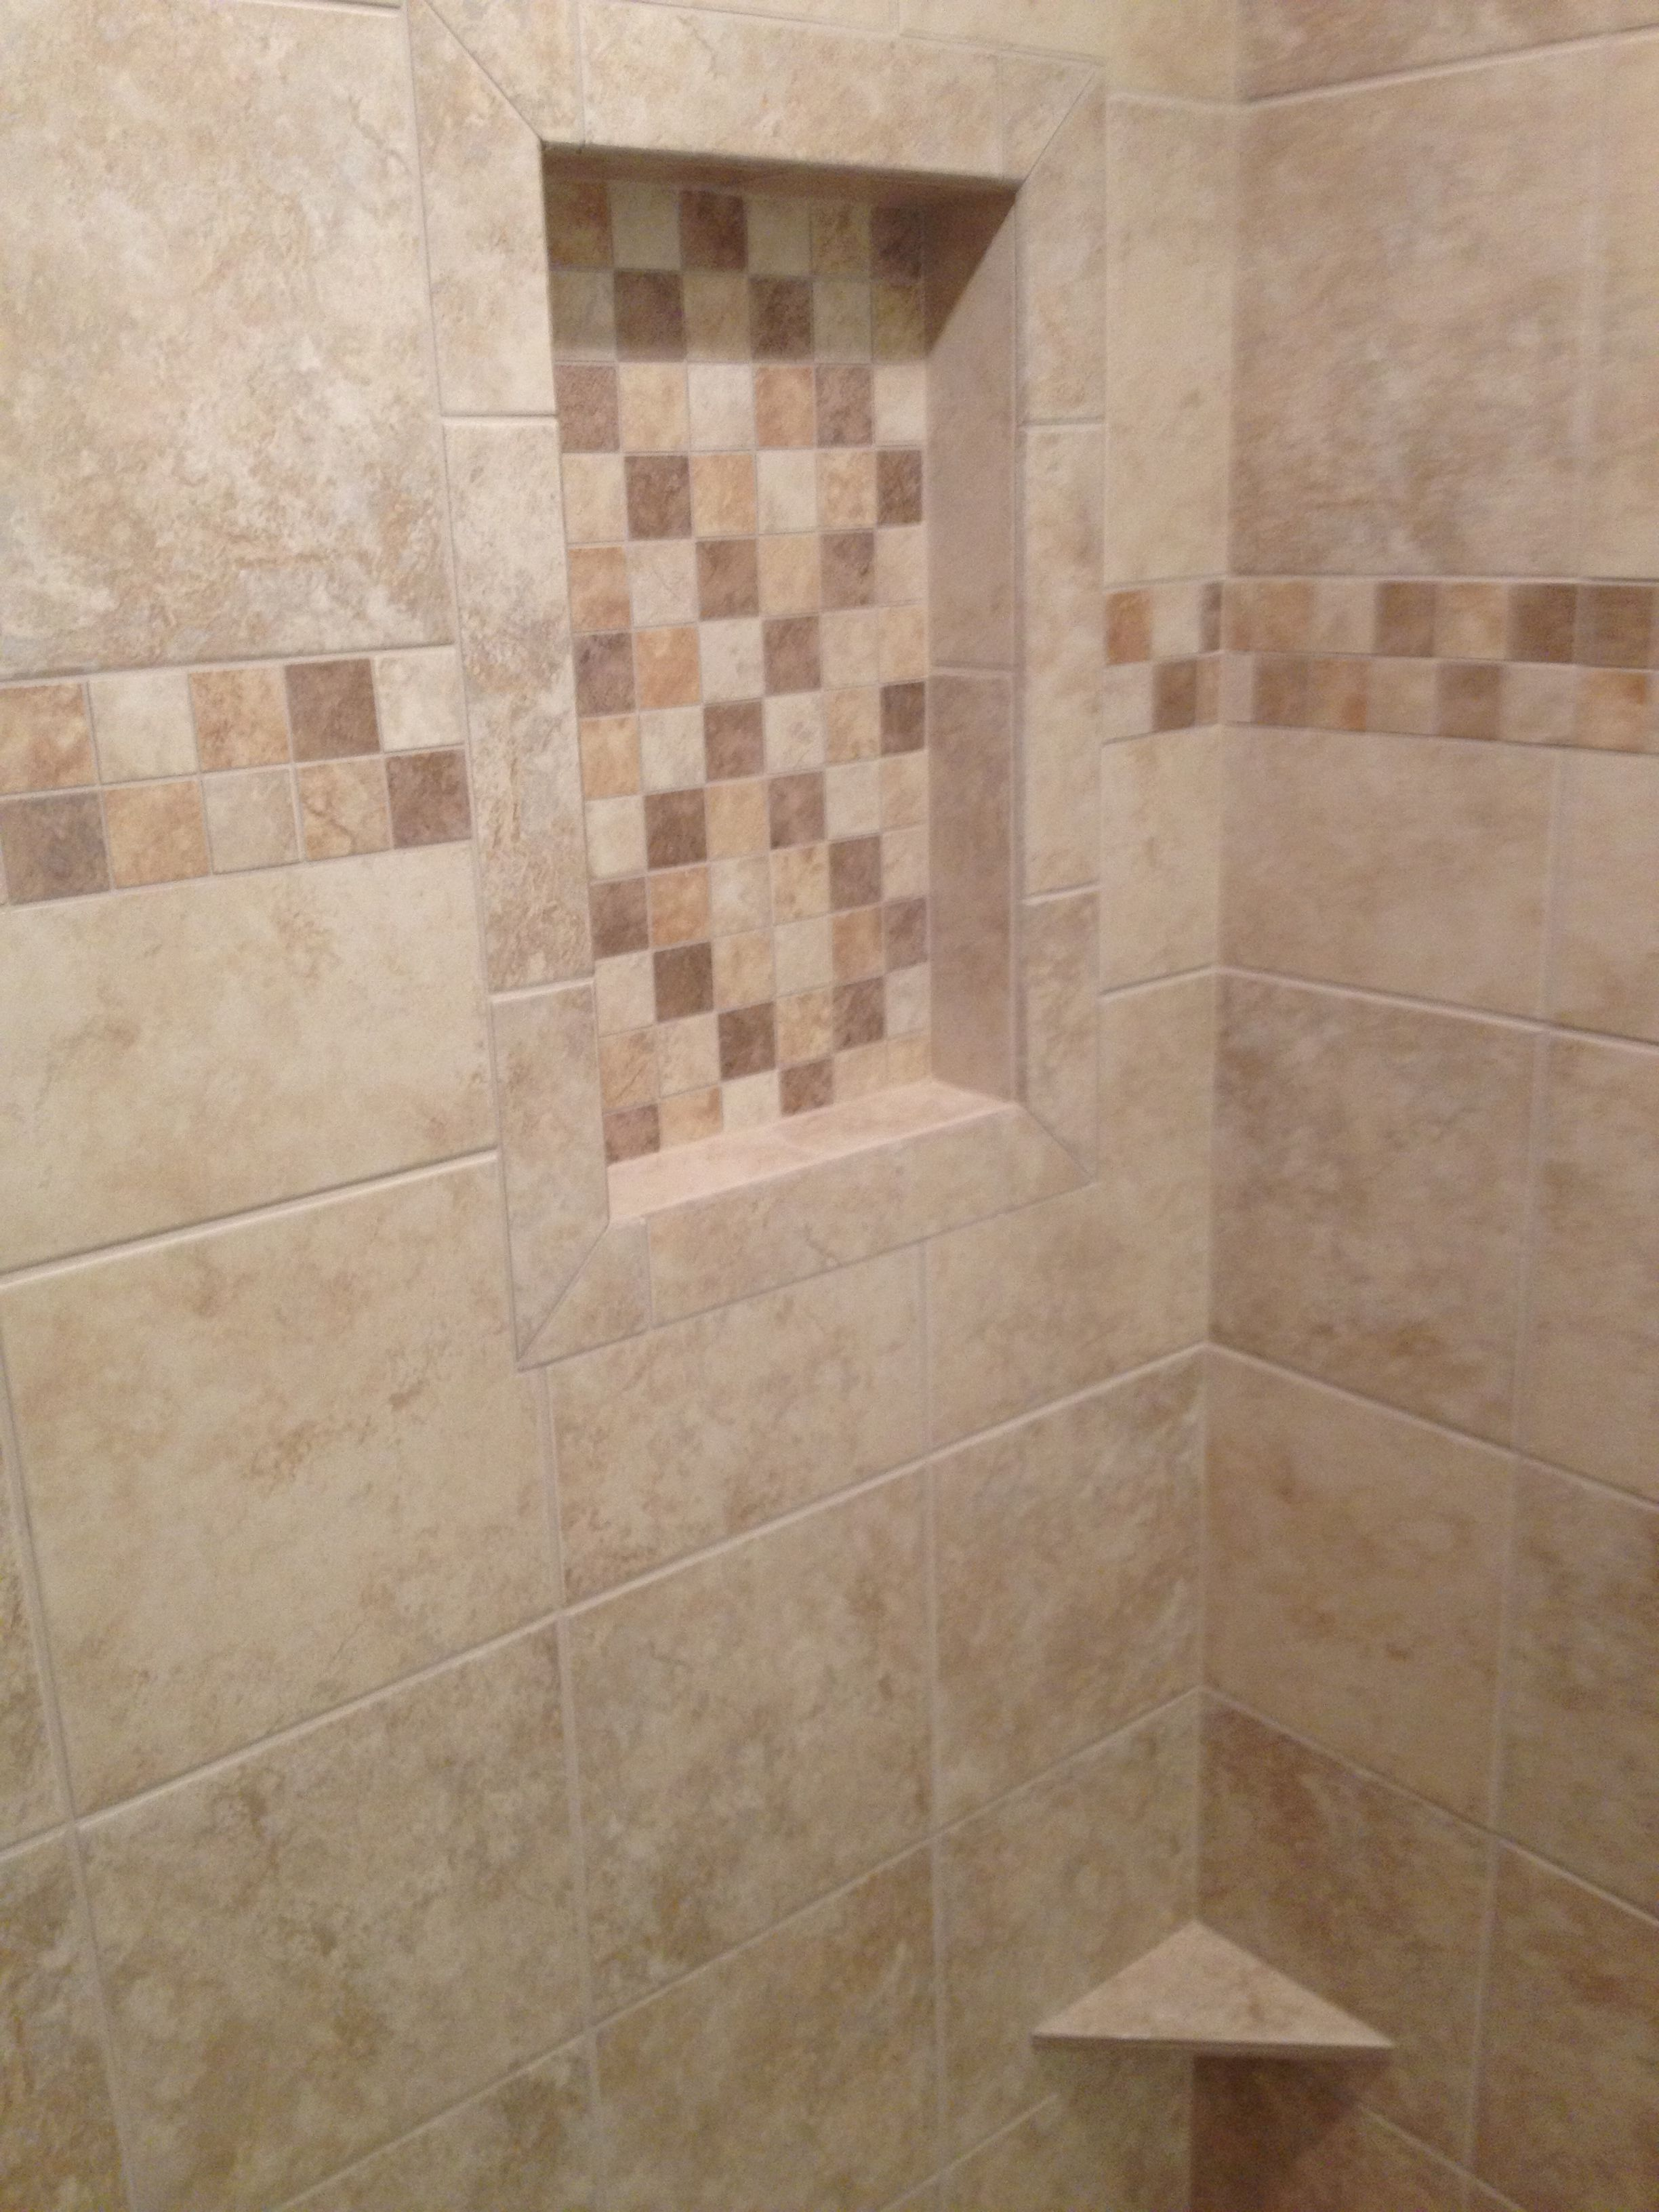 Checkered Pattern, Single Shelf, Corner Foot Rest, Custom Shower Design